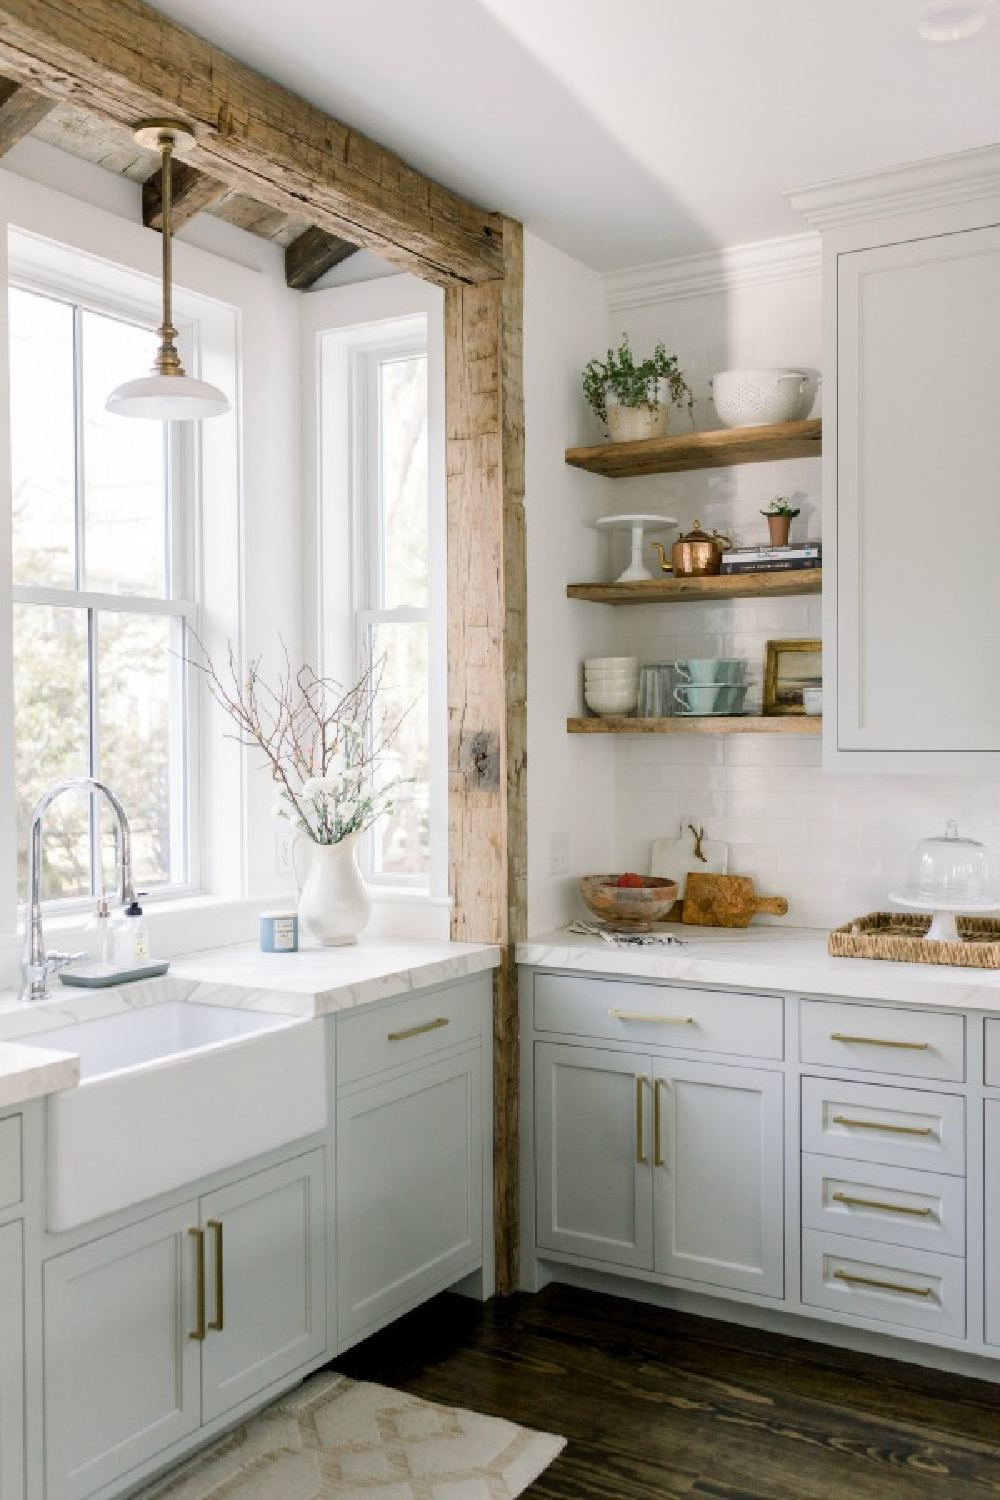 Elegant white farmhouse kitchen with Benjamin Moore Repose Grey cabinets, subway tile, gold accents, and reclaimed barn wood. Design: Finding Lovely.  See more Gorgeous European Country Interior Design Inspiration on Hello Lovely. #europeancountry #frenchfarmhouse #interiordesign